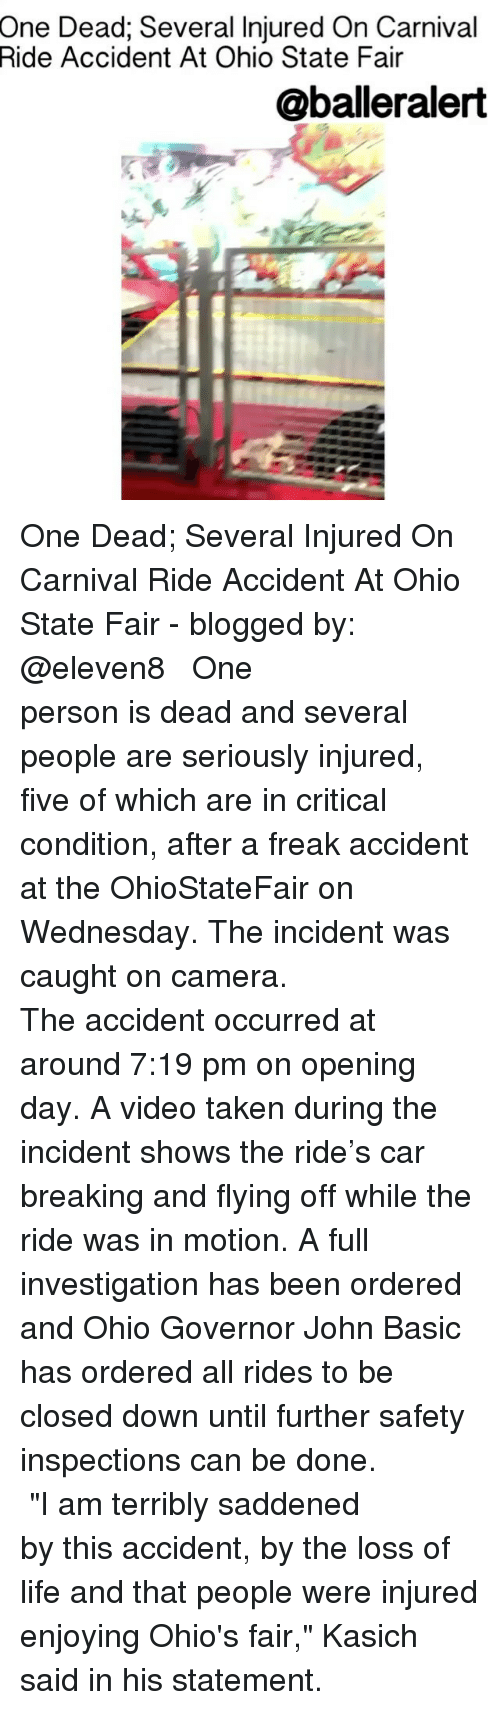 "Life, Memes, and Taken: One Dead; Several Injured On Carnival  Accident At Ohio State Fair  Ride  @balleralert One Dead; Several Injured On Carnival Ride Accident At Ohio State Fair - blogged by: @eleven8 ⠀⠀⠀⠀⠀⠀⠀⠀⠀ ⠀⠀⠀⠀⠀⠀⠀⠀⠀ One person is dead and several people are seriously injured, five of which are in critical condition, after a freak accident at the OhioStateFair on Wednesday. The incident was caught on camera. ⠀⠀⠀⠀⠀⠀⠀⠀⠀ ⠀⠀⠀⠀⠀⠀⠀⠀⠀ The accident occurred at around 7:19 pm on opening day. A video taken during the incident shows the ride's car breaking and flying off while the ride was in motion. A full investigation has been ordered and Ohio Governor John Basic has ordered all rides to be closed down until further safety inspections can be done. ⠀⠀⠀⠀⠀⠀⠀⠀⠀ ⠀⠀⠀⠀⠀⠀⠀⠀⠀ ""I am terribly saddened by this accident, by the loss of life and that people were injured enjoying Ohio's fair,"" Kasich said in his statement."